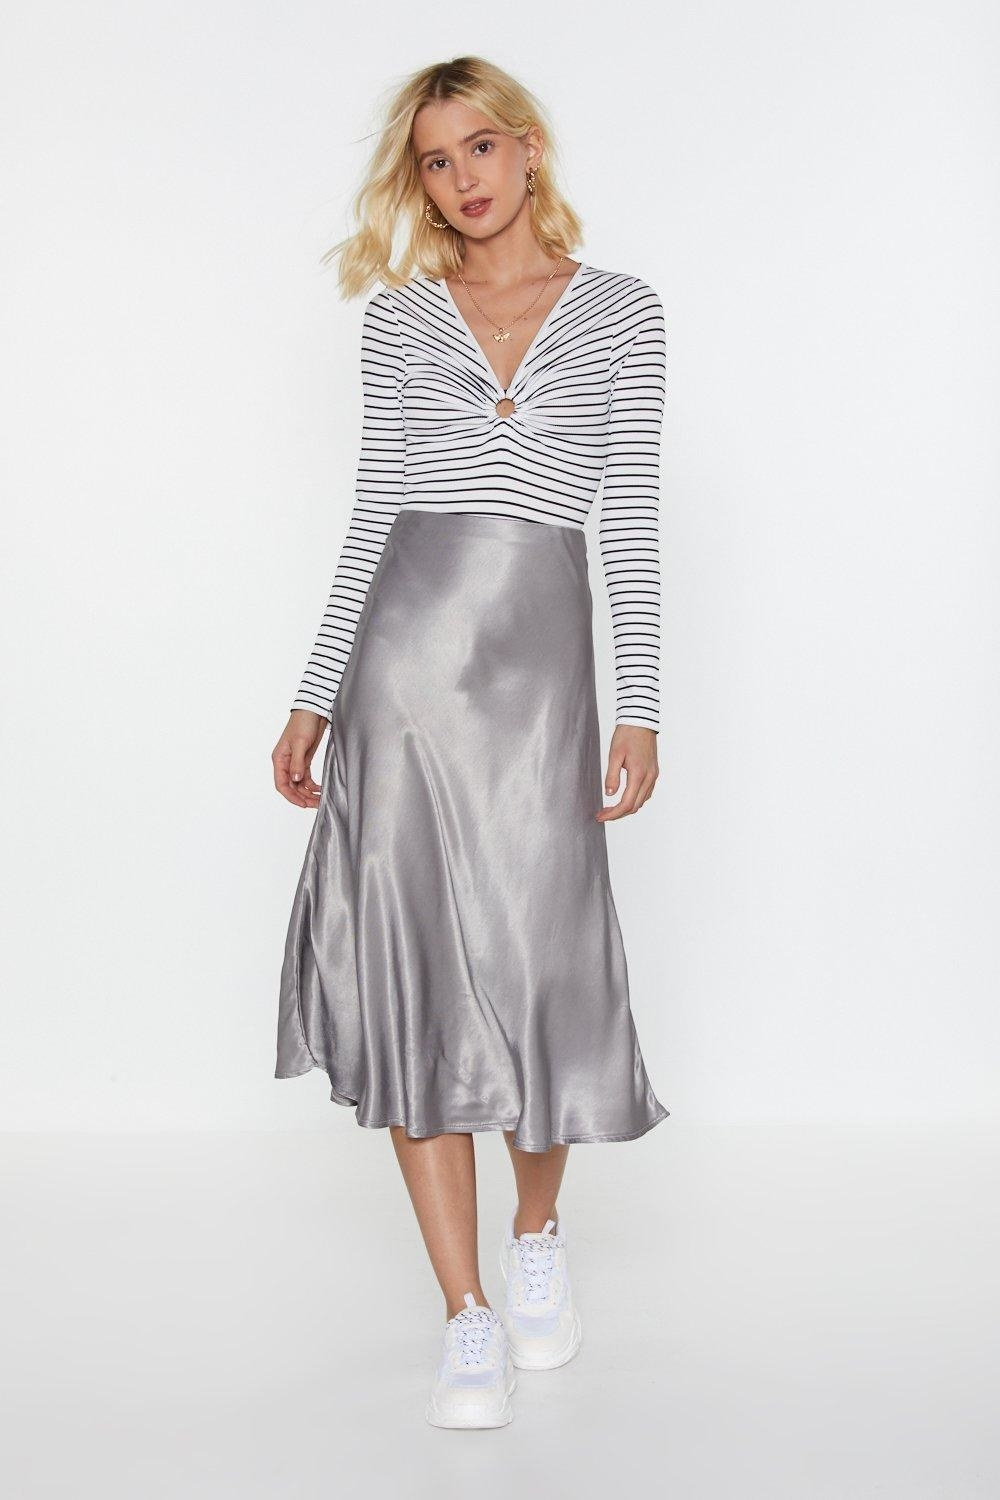 99662f0c14 A satin skirt that ll help you make a  smooth  transition from wearing  jeans all the time. Dare I say when you start wearing this with sneakers  and band ...